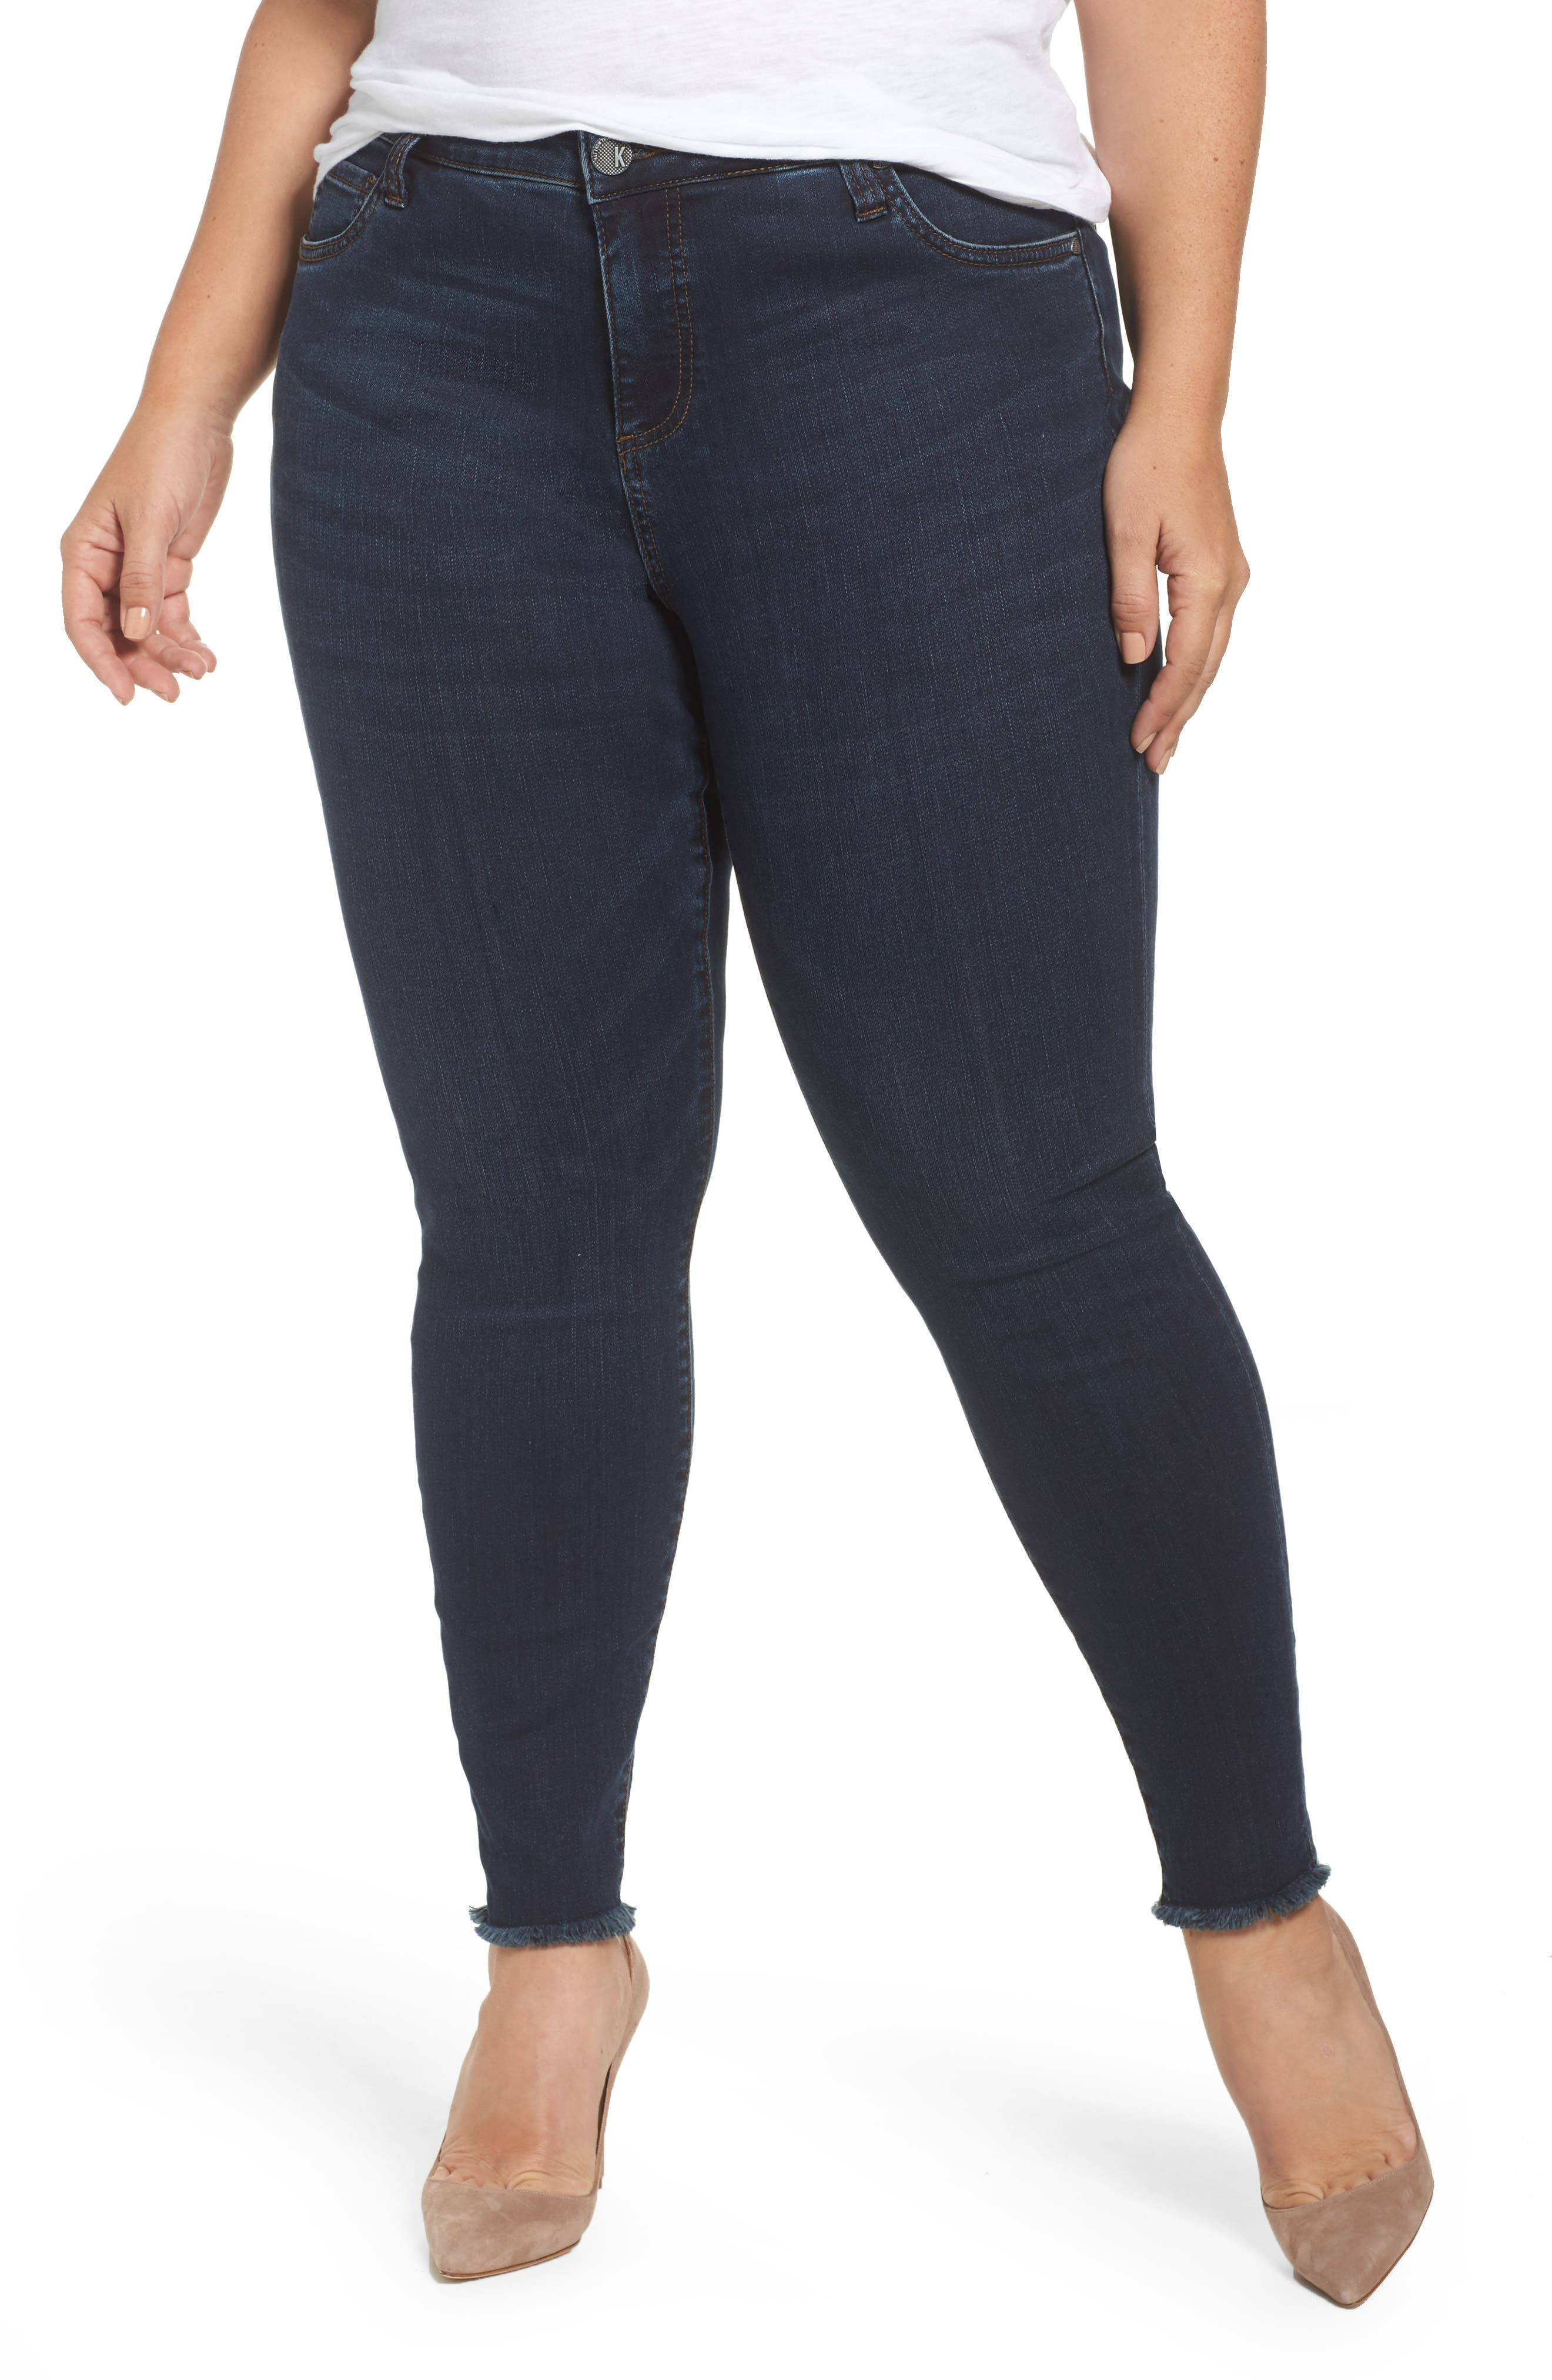 Alternate Image 1 Selected - KUT from the Kloth Donna Frayed Skinny Crop Jeans (Certitude) (Plus Size)